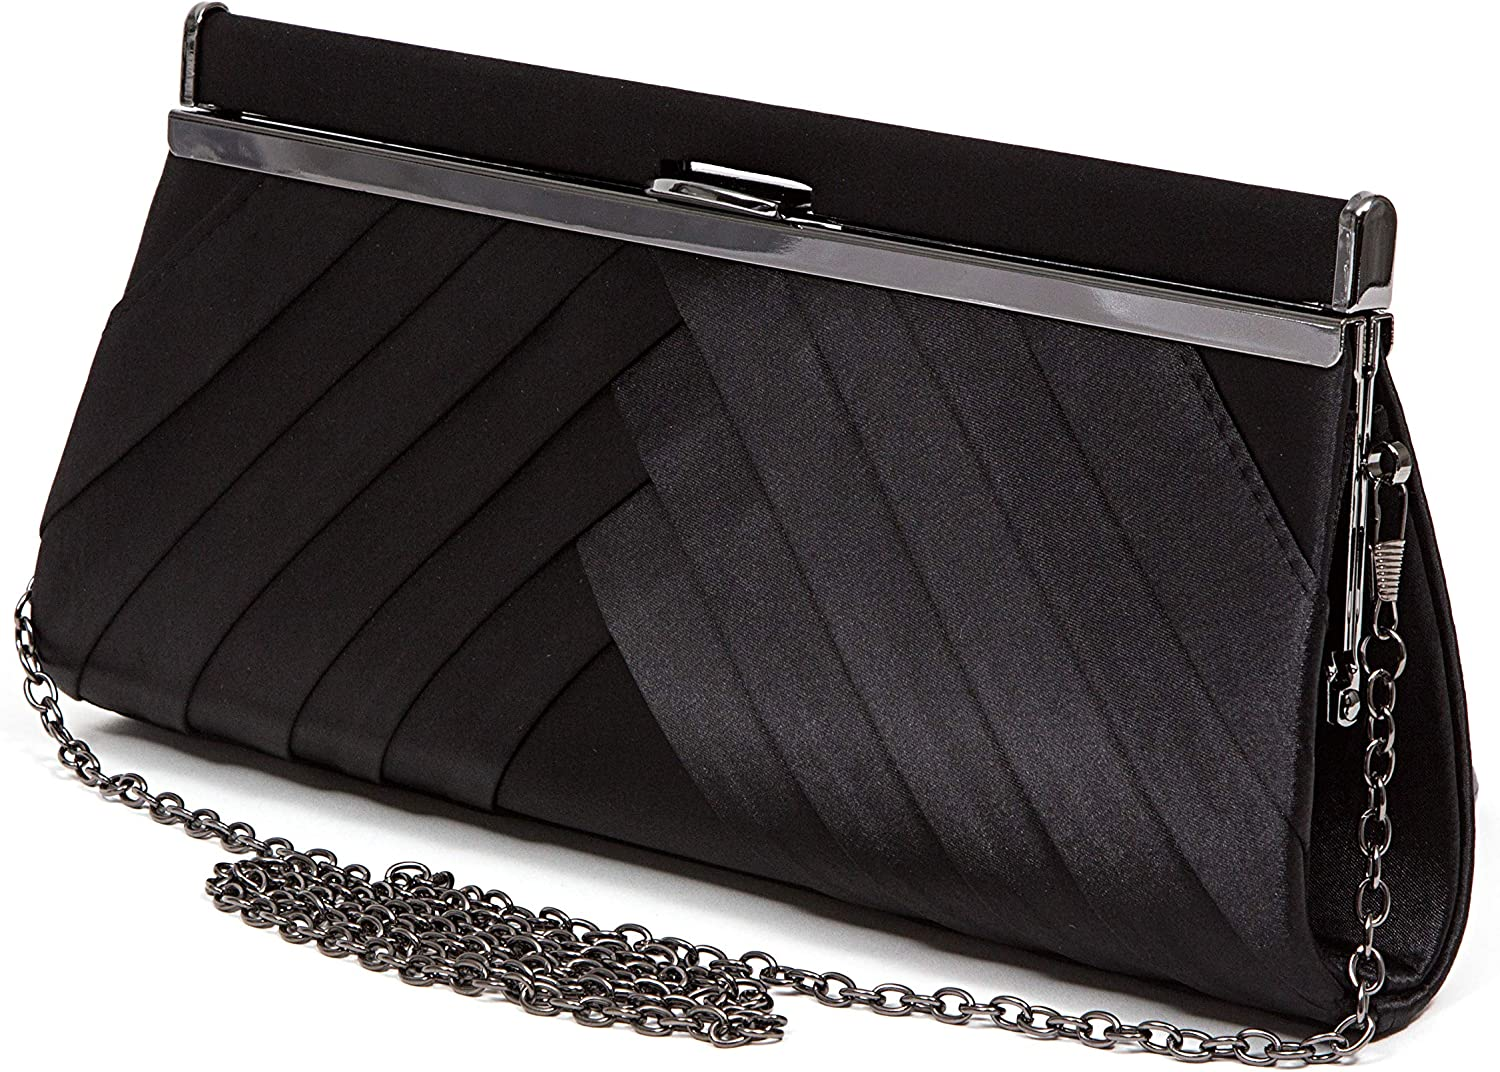 Satin Pleated Clasp Ranking TOP3 BAG Handbag DIANE Free shipping anywhere in the nation